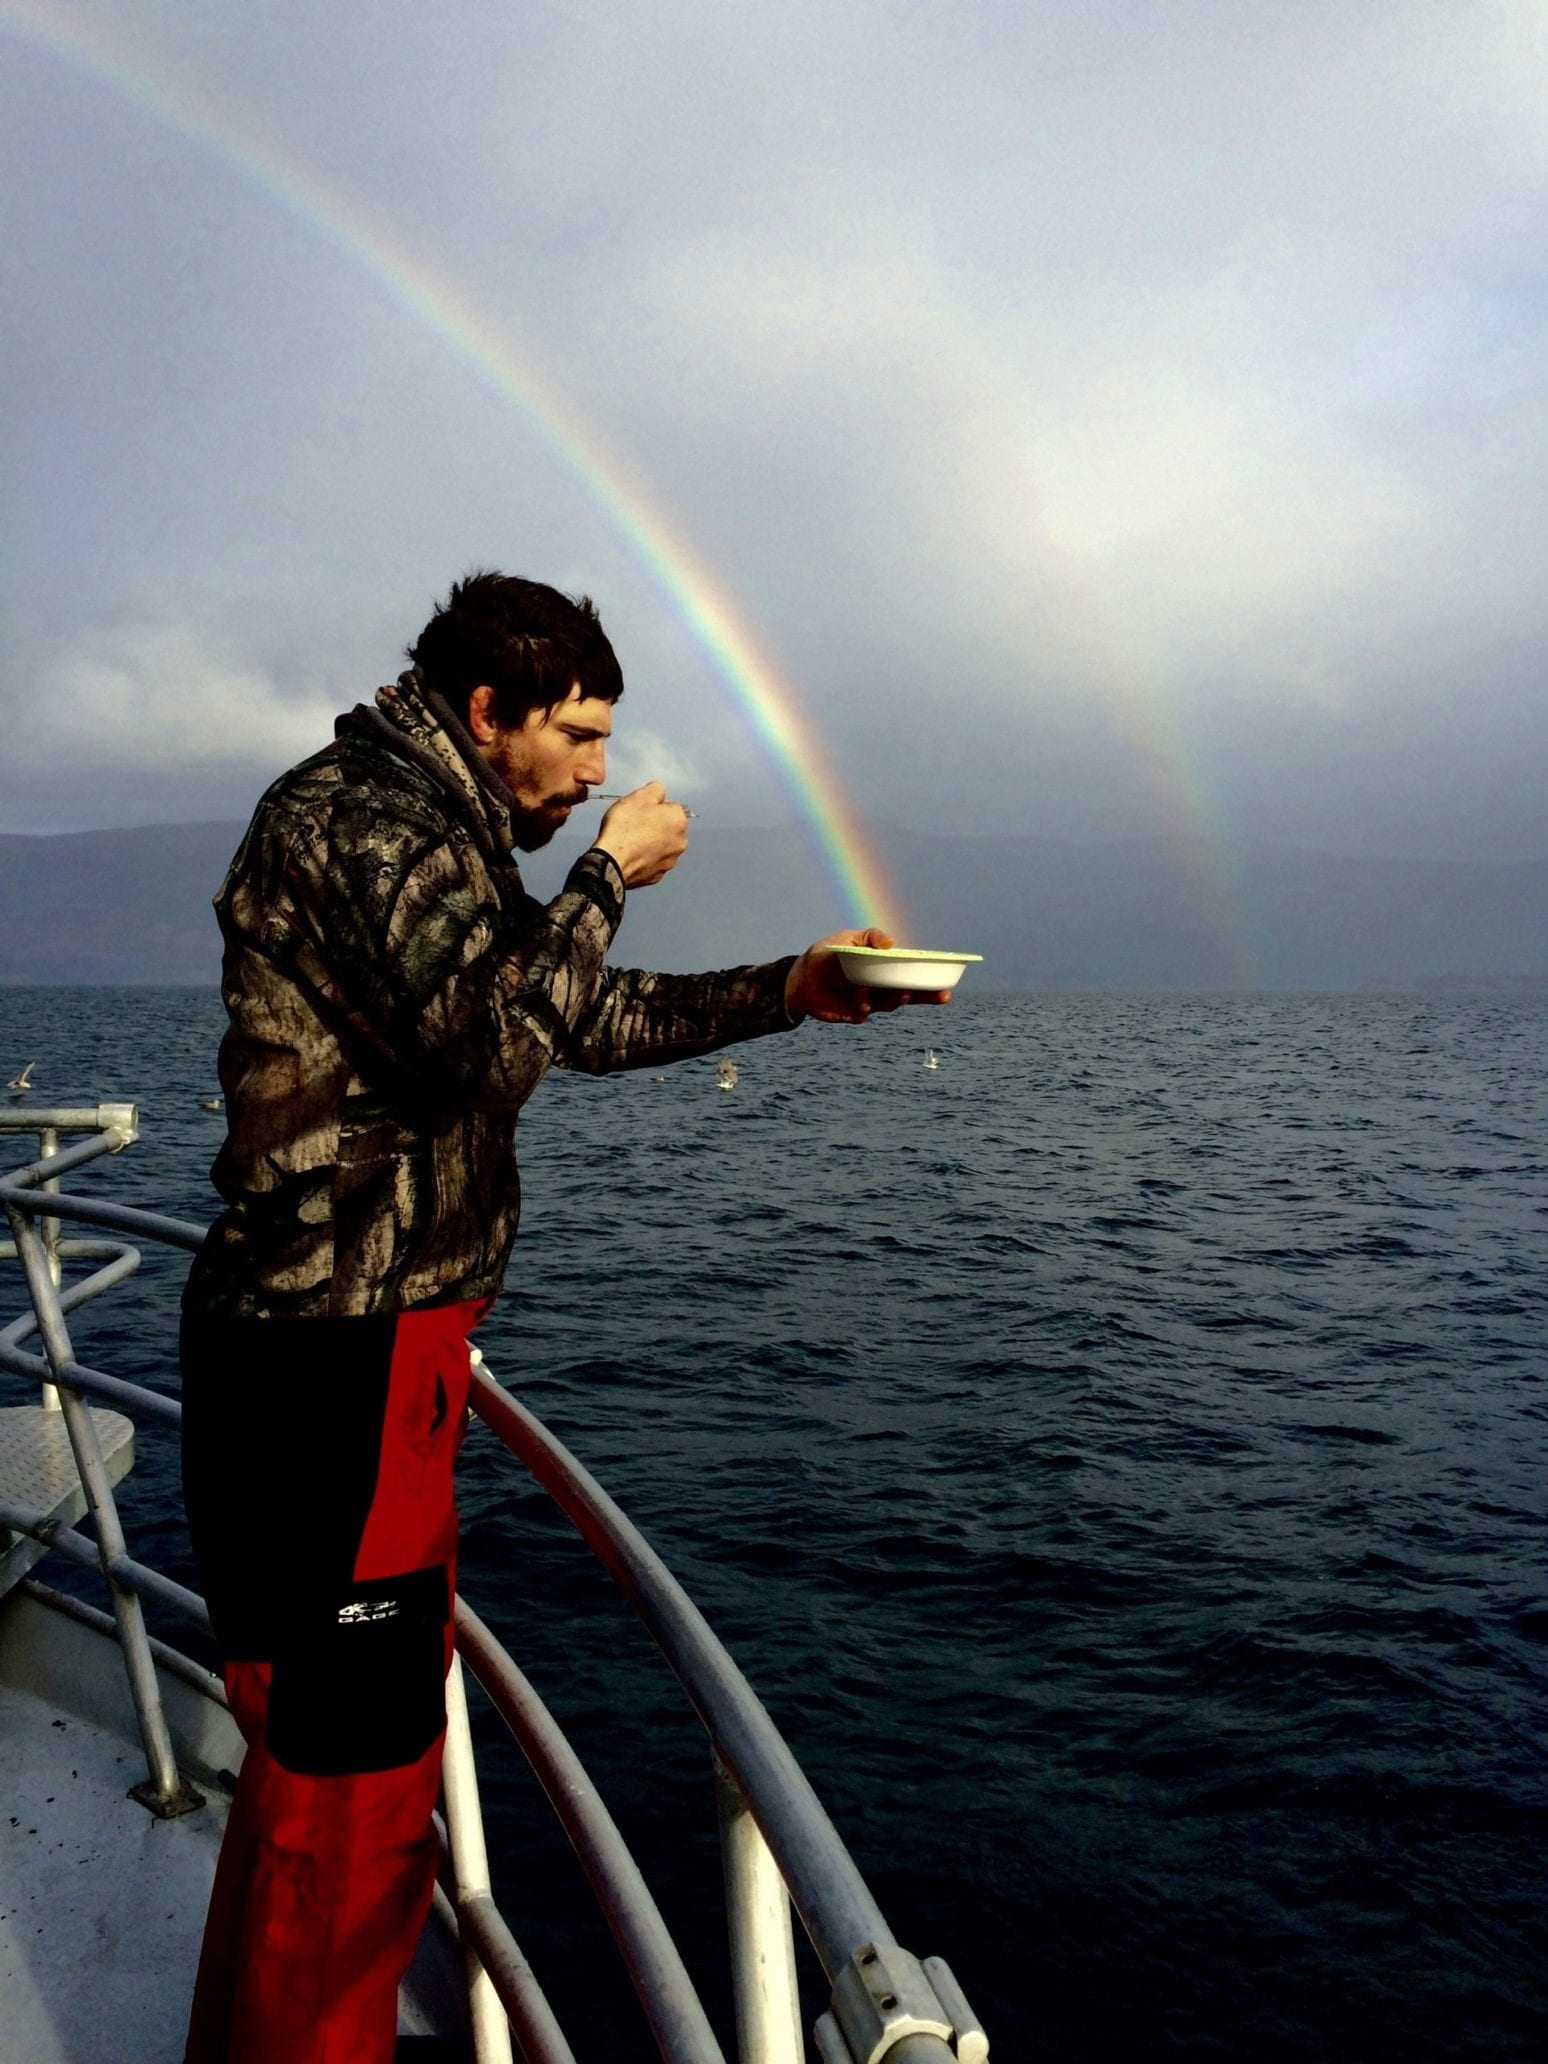 man eating cereal with rainbows in background